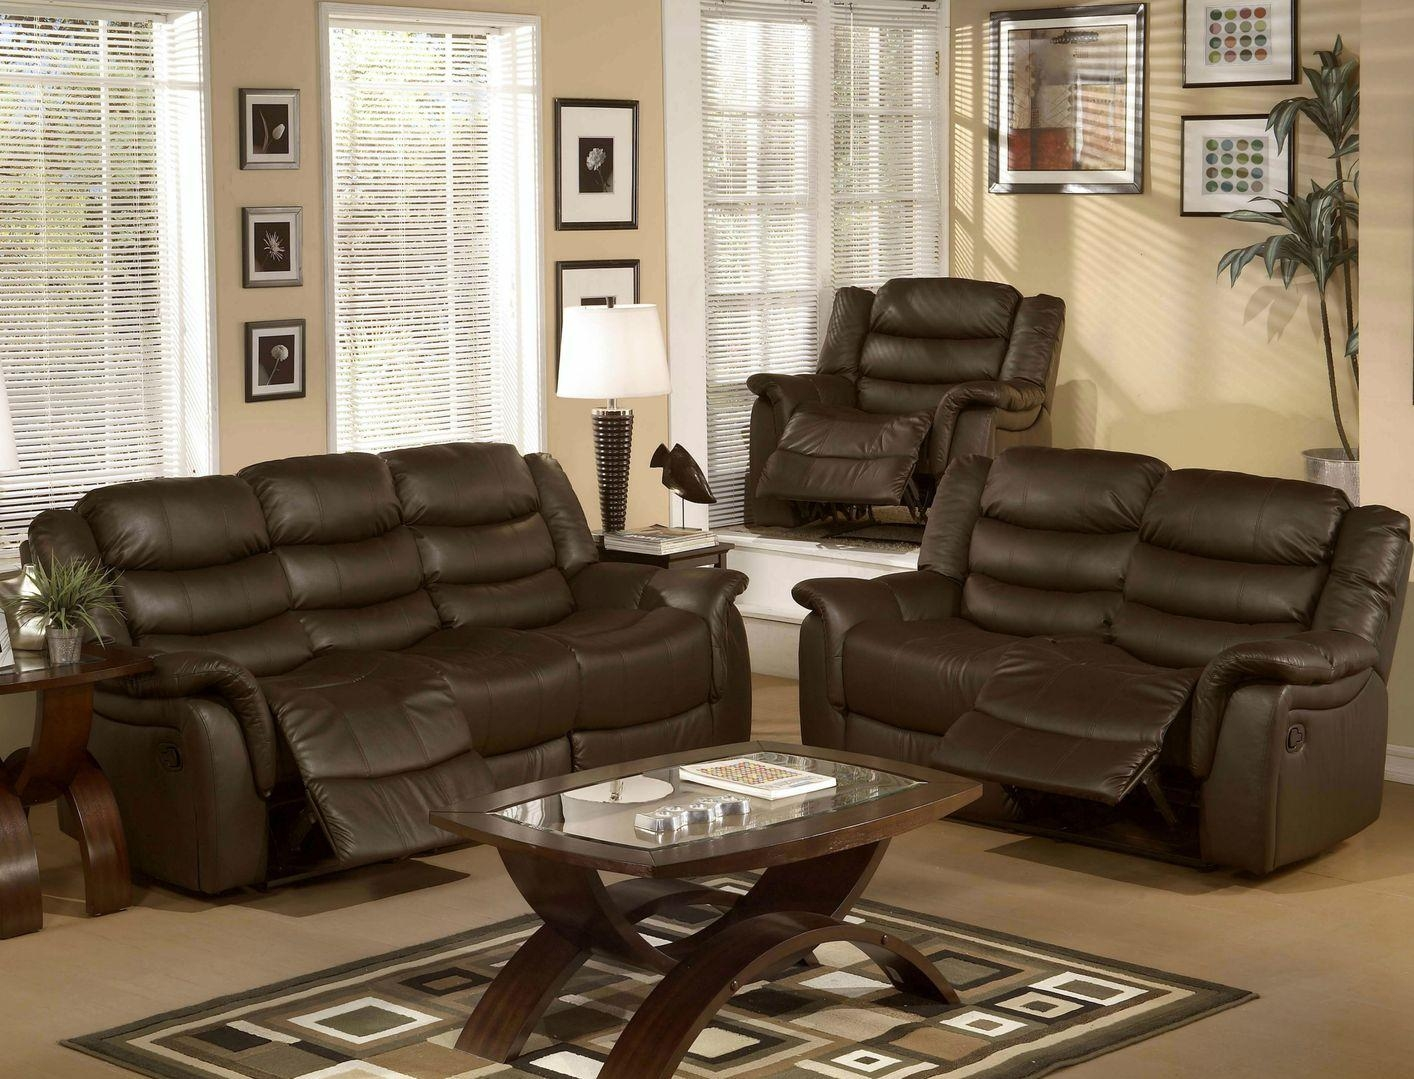 Sofa And Chair Set | Modern Chairs Design Inside Elegant Sofas And Chairs (View 8 of 20)